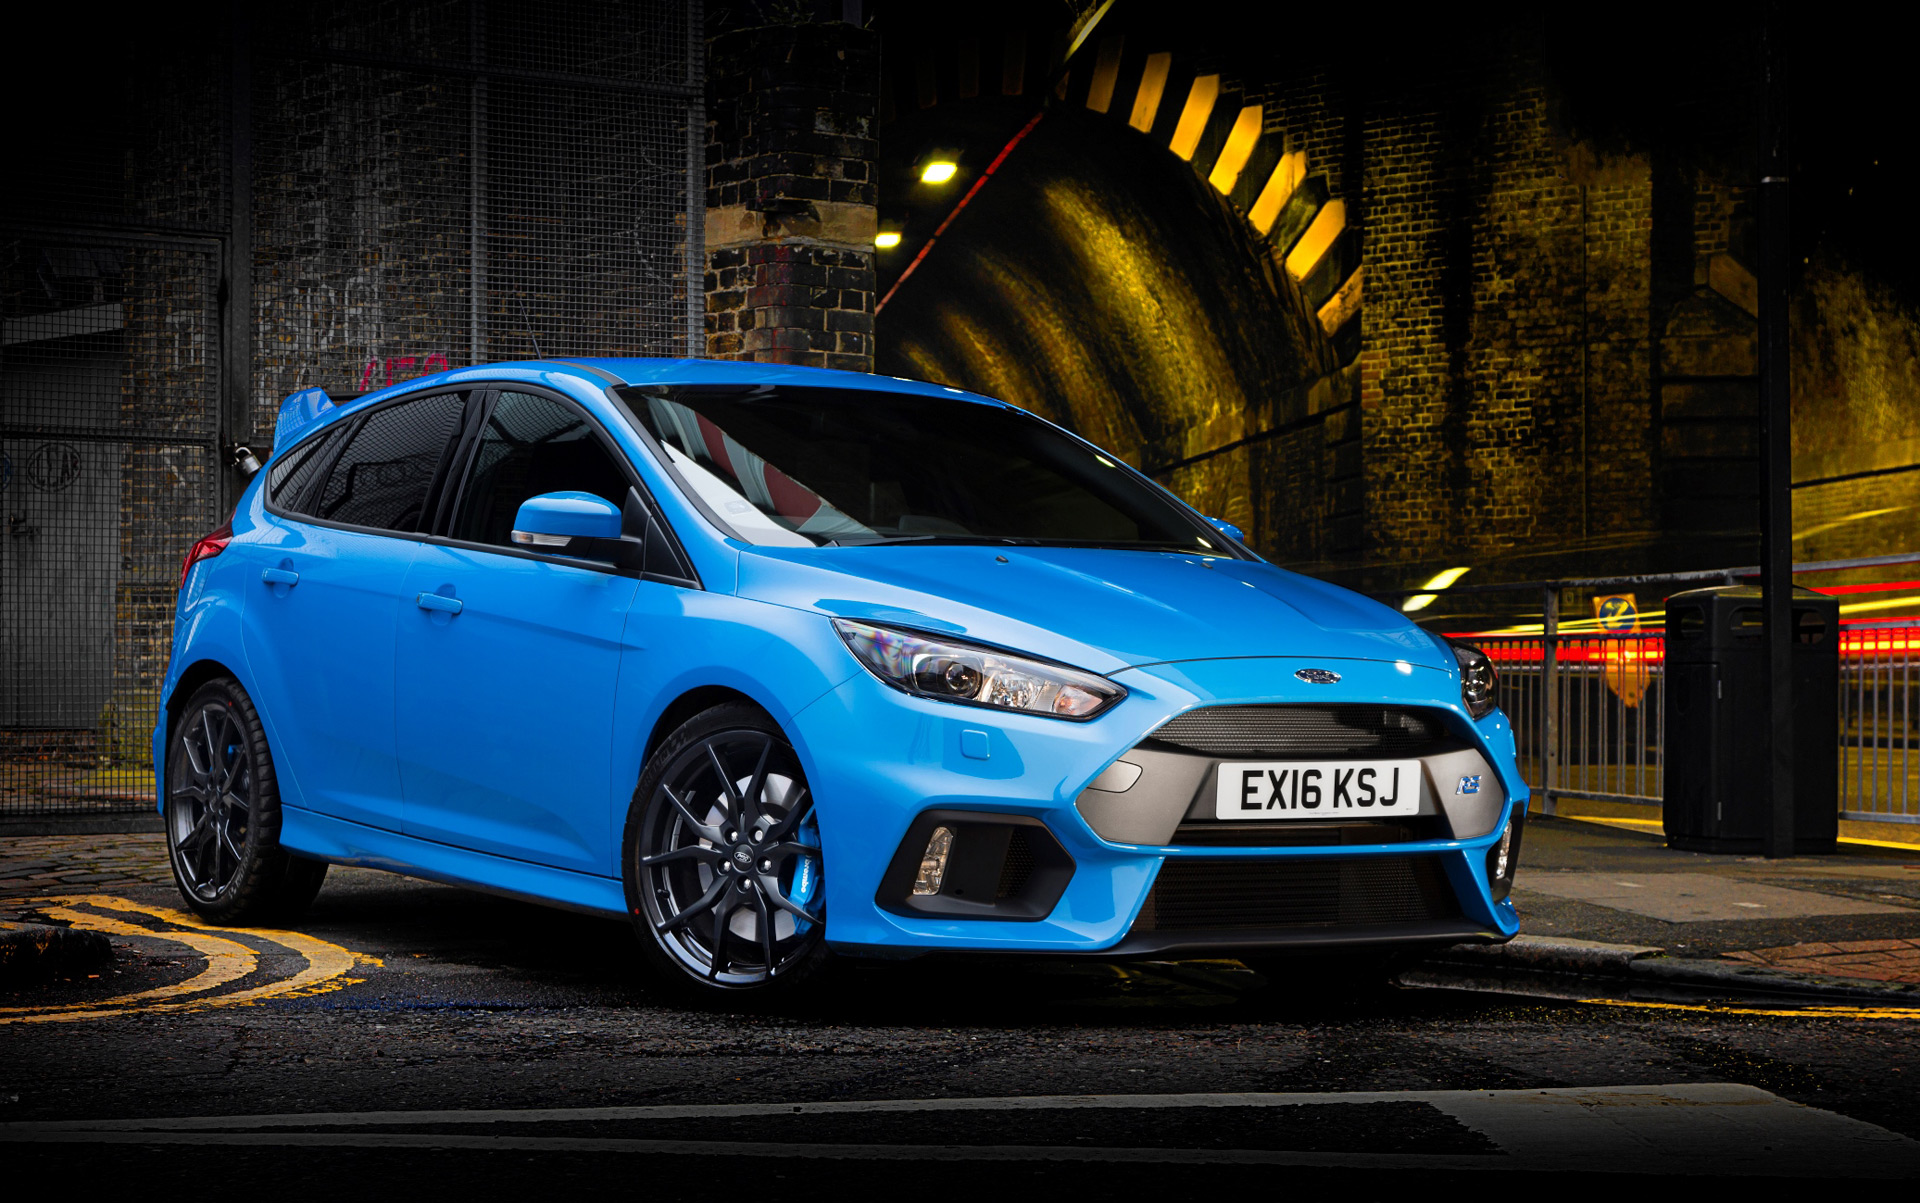 Focus Rs Hp >> Focus Rs Output Boosted To 370 Hp With Factory Backed Mountune Kit